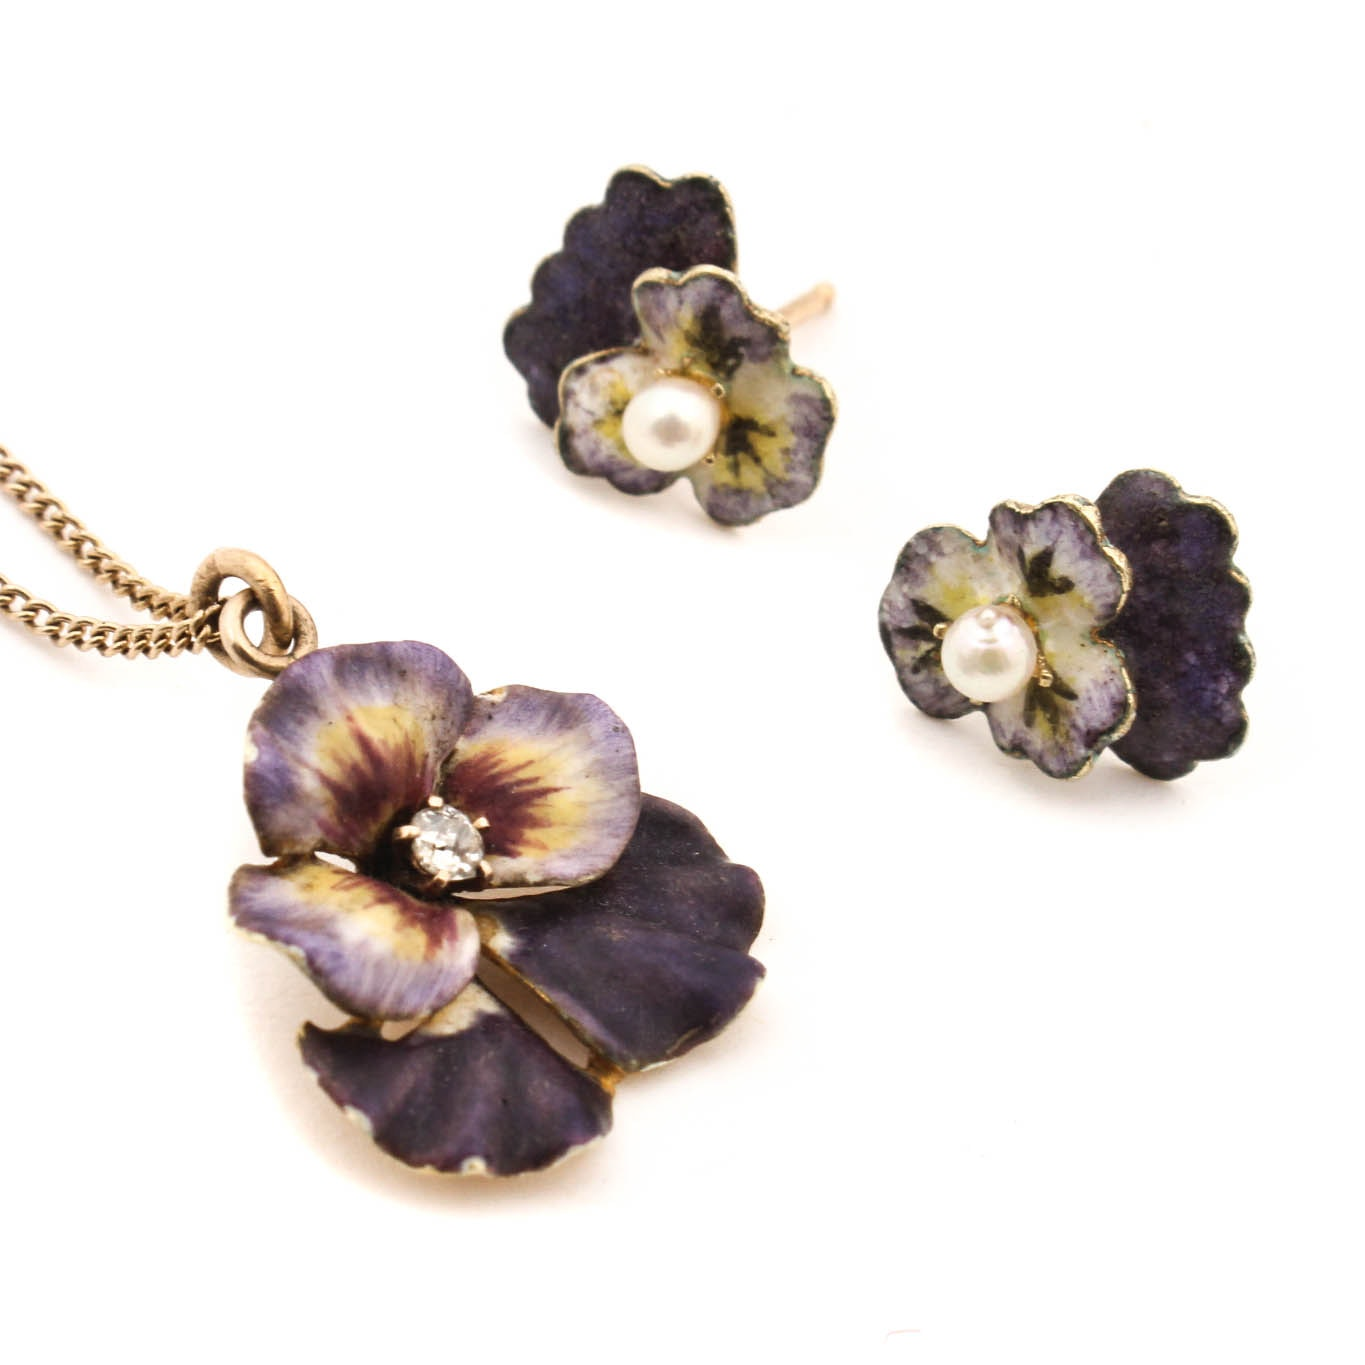 Vintage 14K Yellow Gold Diamond Cultured Pearl and Enamel Pansy Jewelry